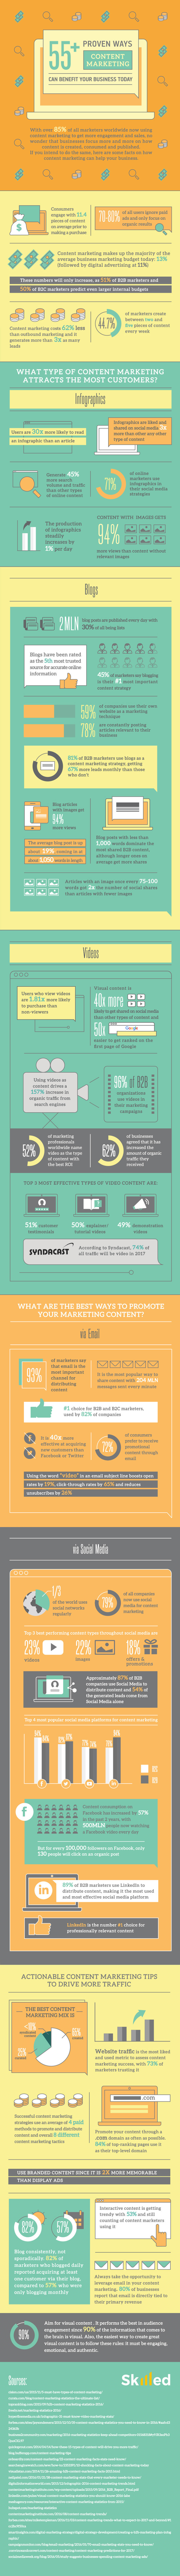 content_marketing_facts-1.jpg